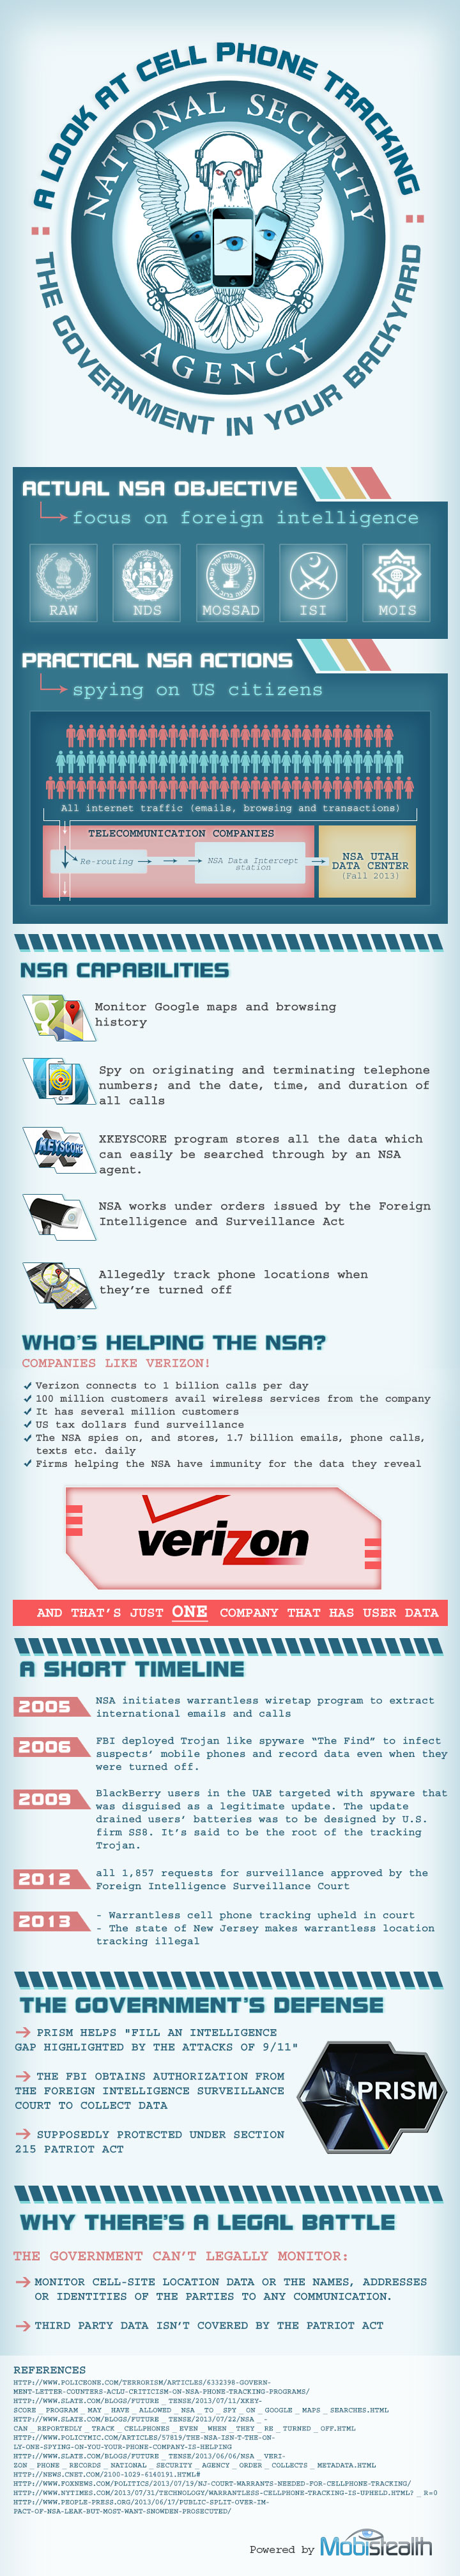 NSA: From security providers to cell phone trackers